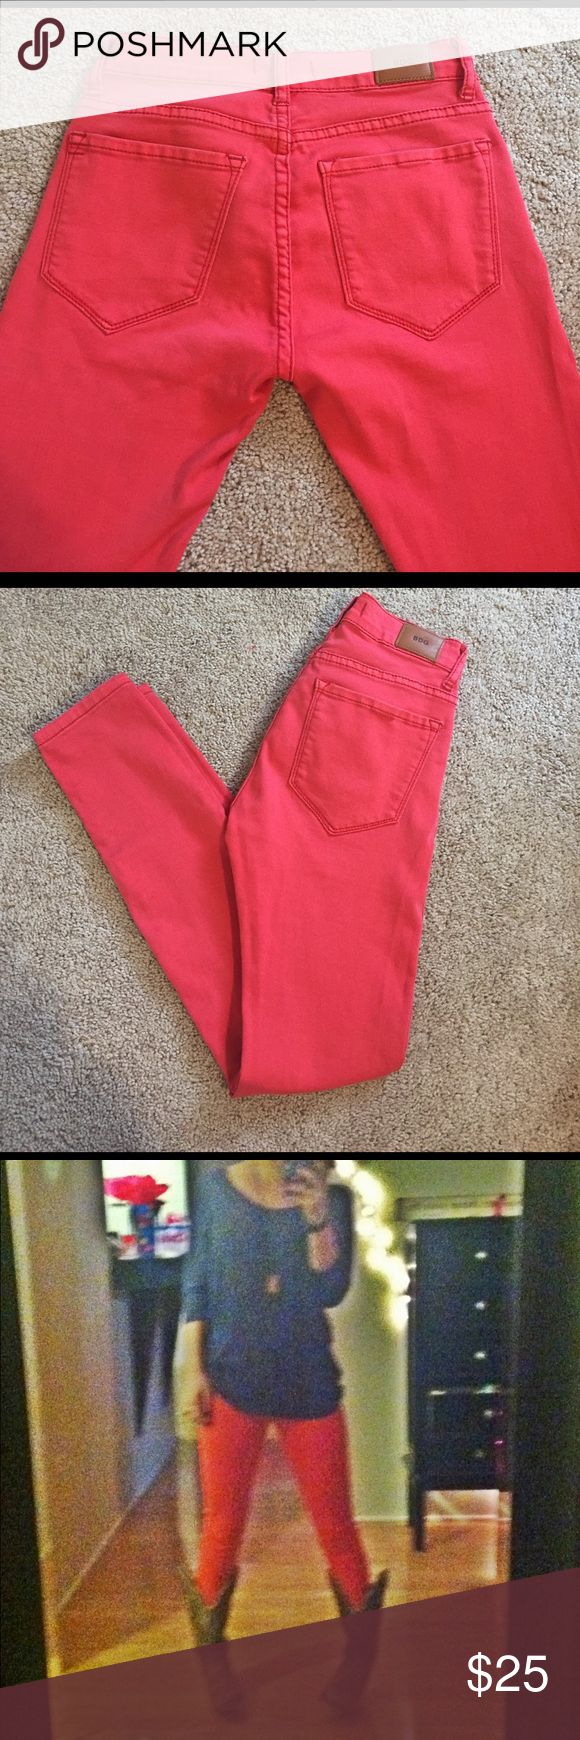 UO bright red skinnys Super cute bright red skinny jeans from Urban Outfitters! Jegging style stretch. Super comfy and fun to brighten up a holiday outfit or night out! Only a small pen dot as shown in the photo, otherwise great condition! Would be keeping but they are a little small on me now. Urban Outfitters Jeans Skinny